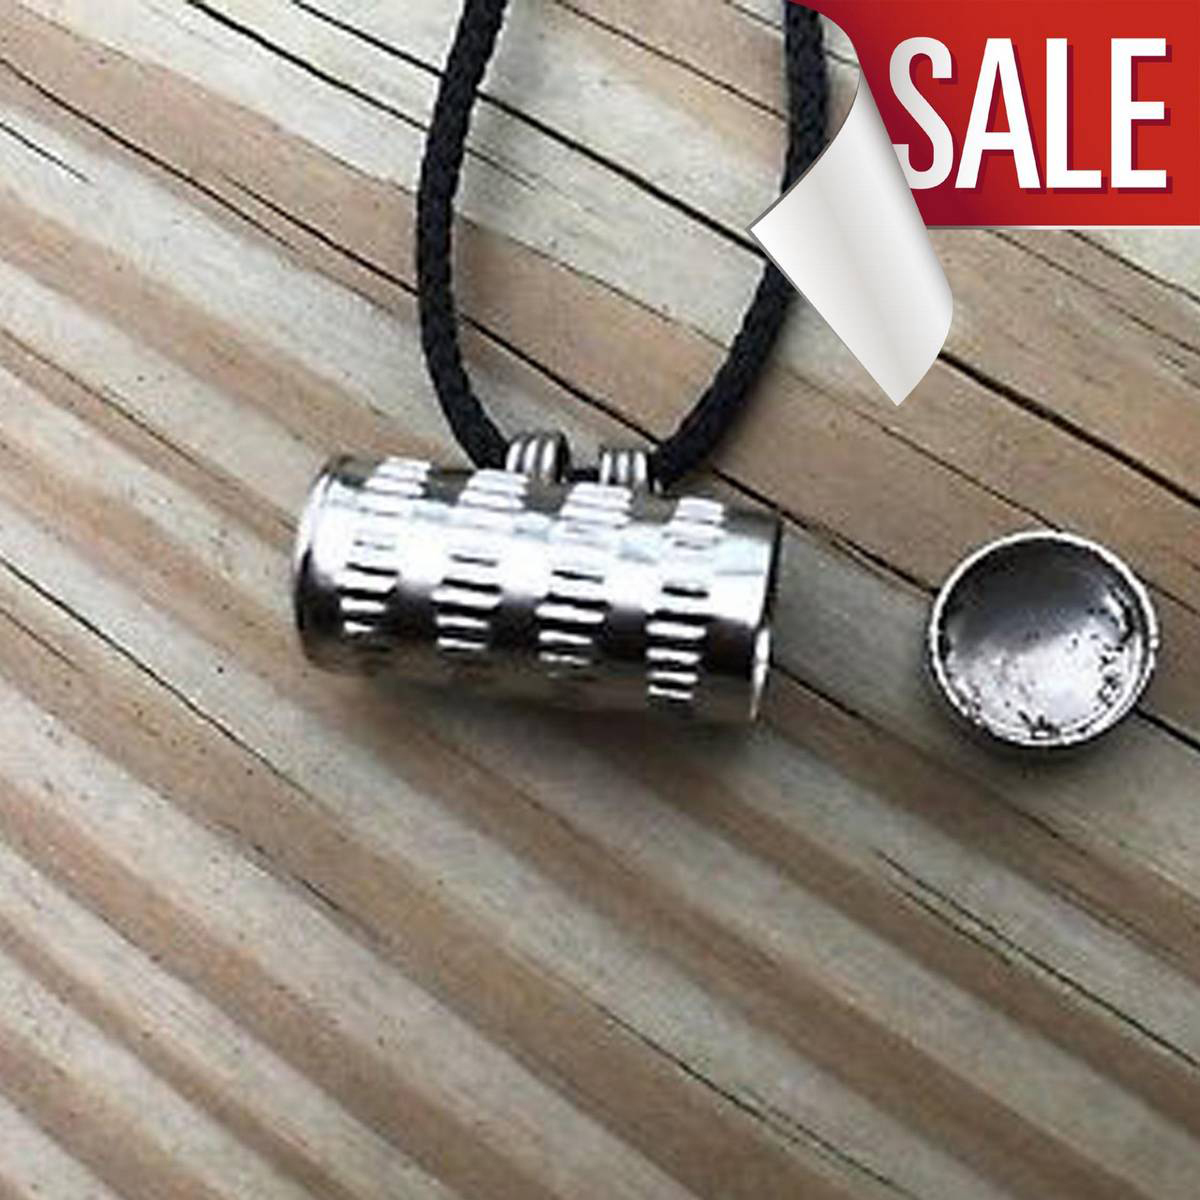 Taweez Box Pendant Antique Style.With Black Cord